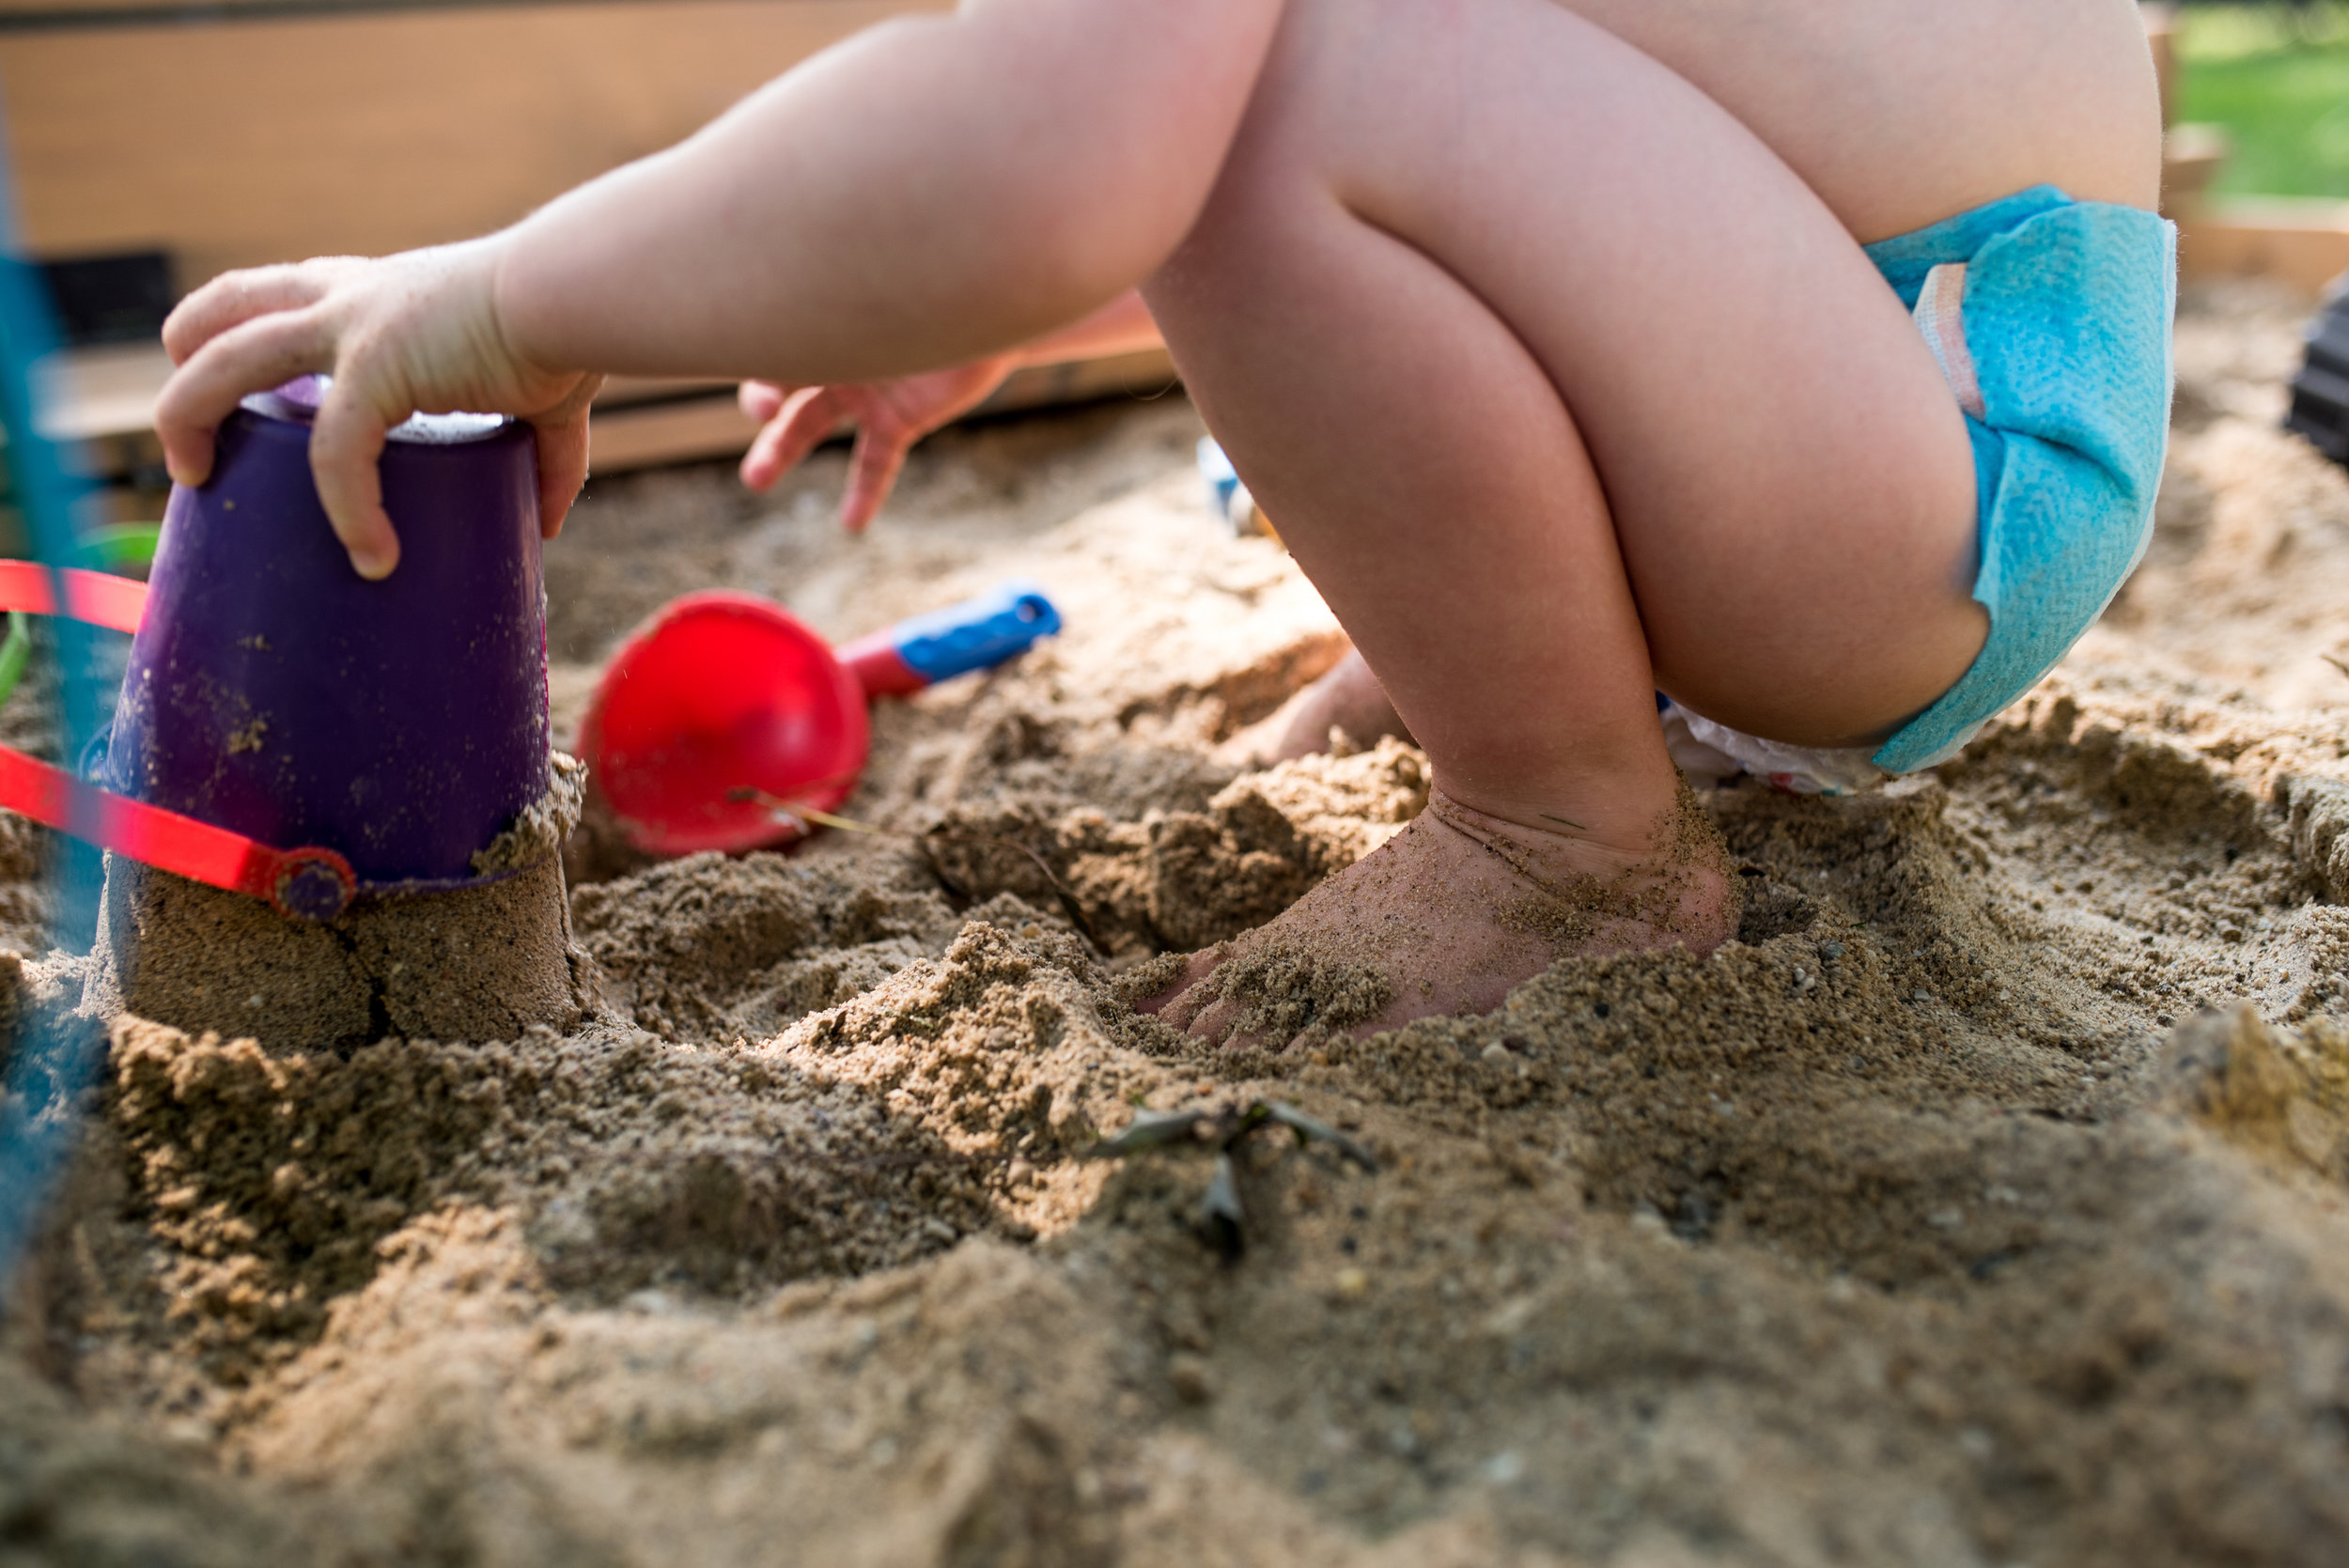 Boy playing in the sandbox with swim diaper on covered in sand